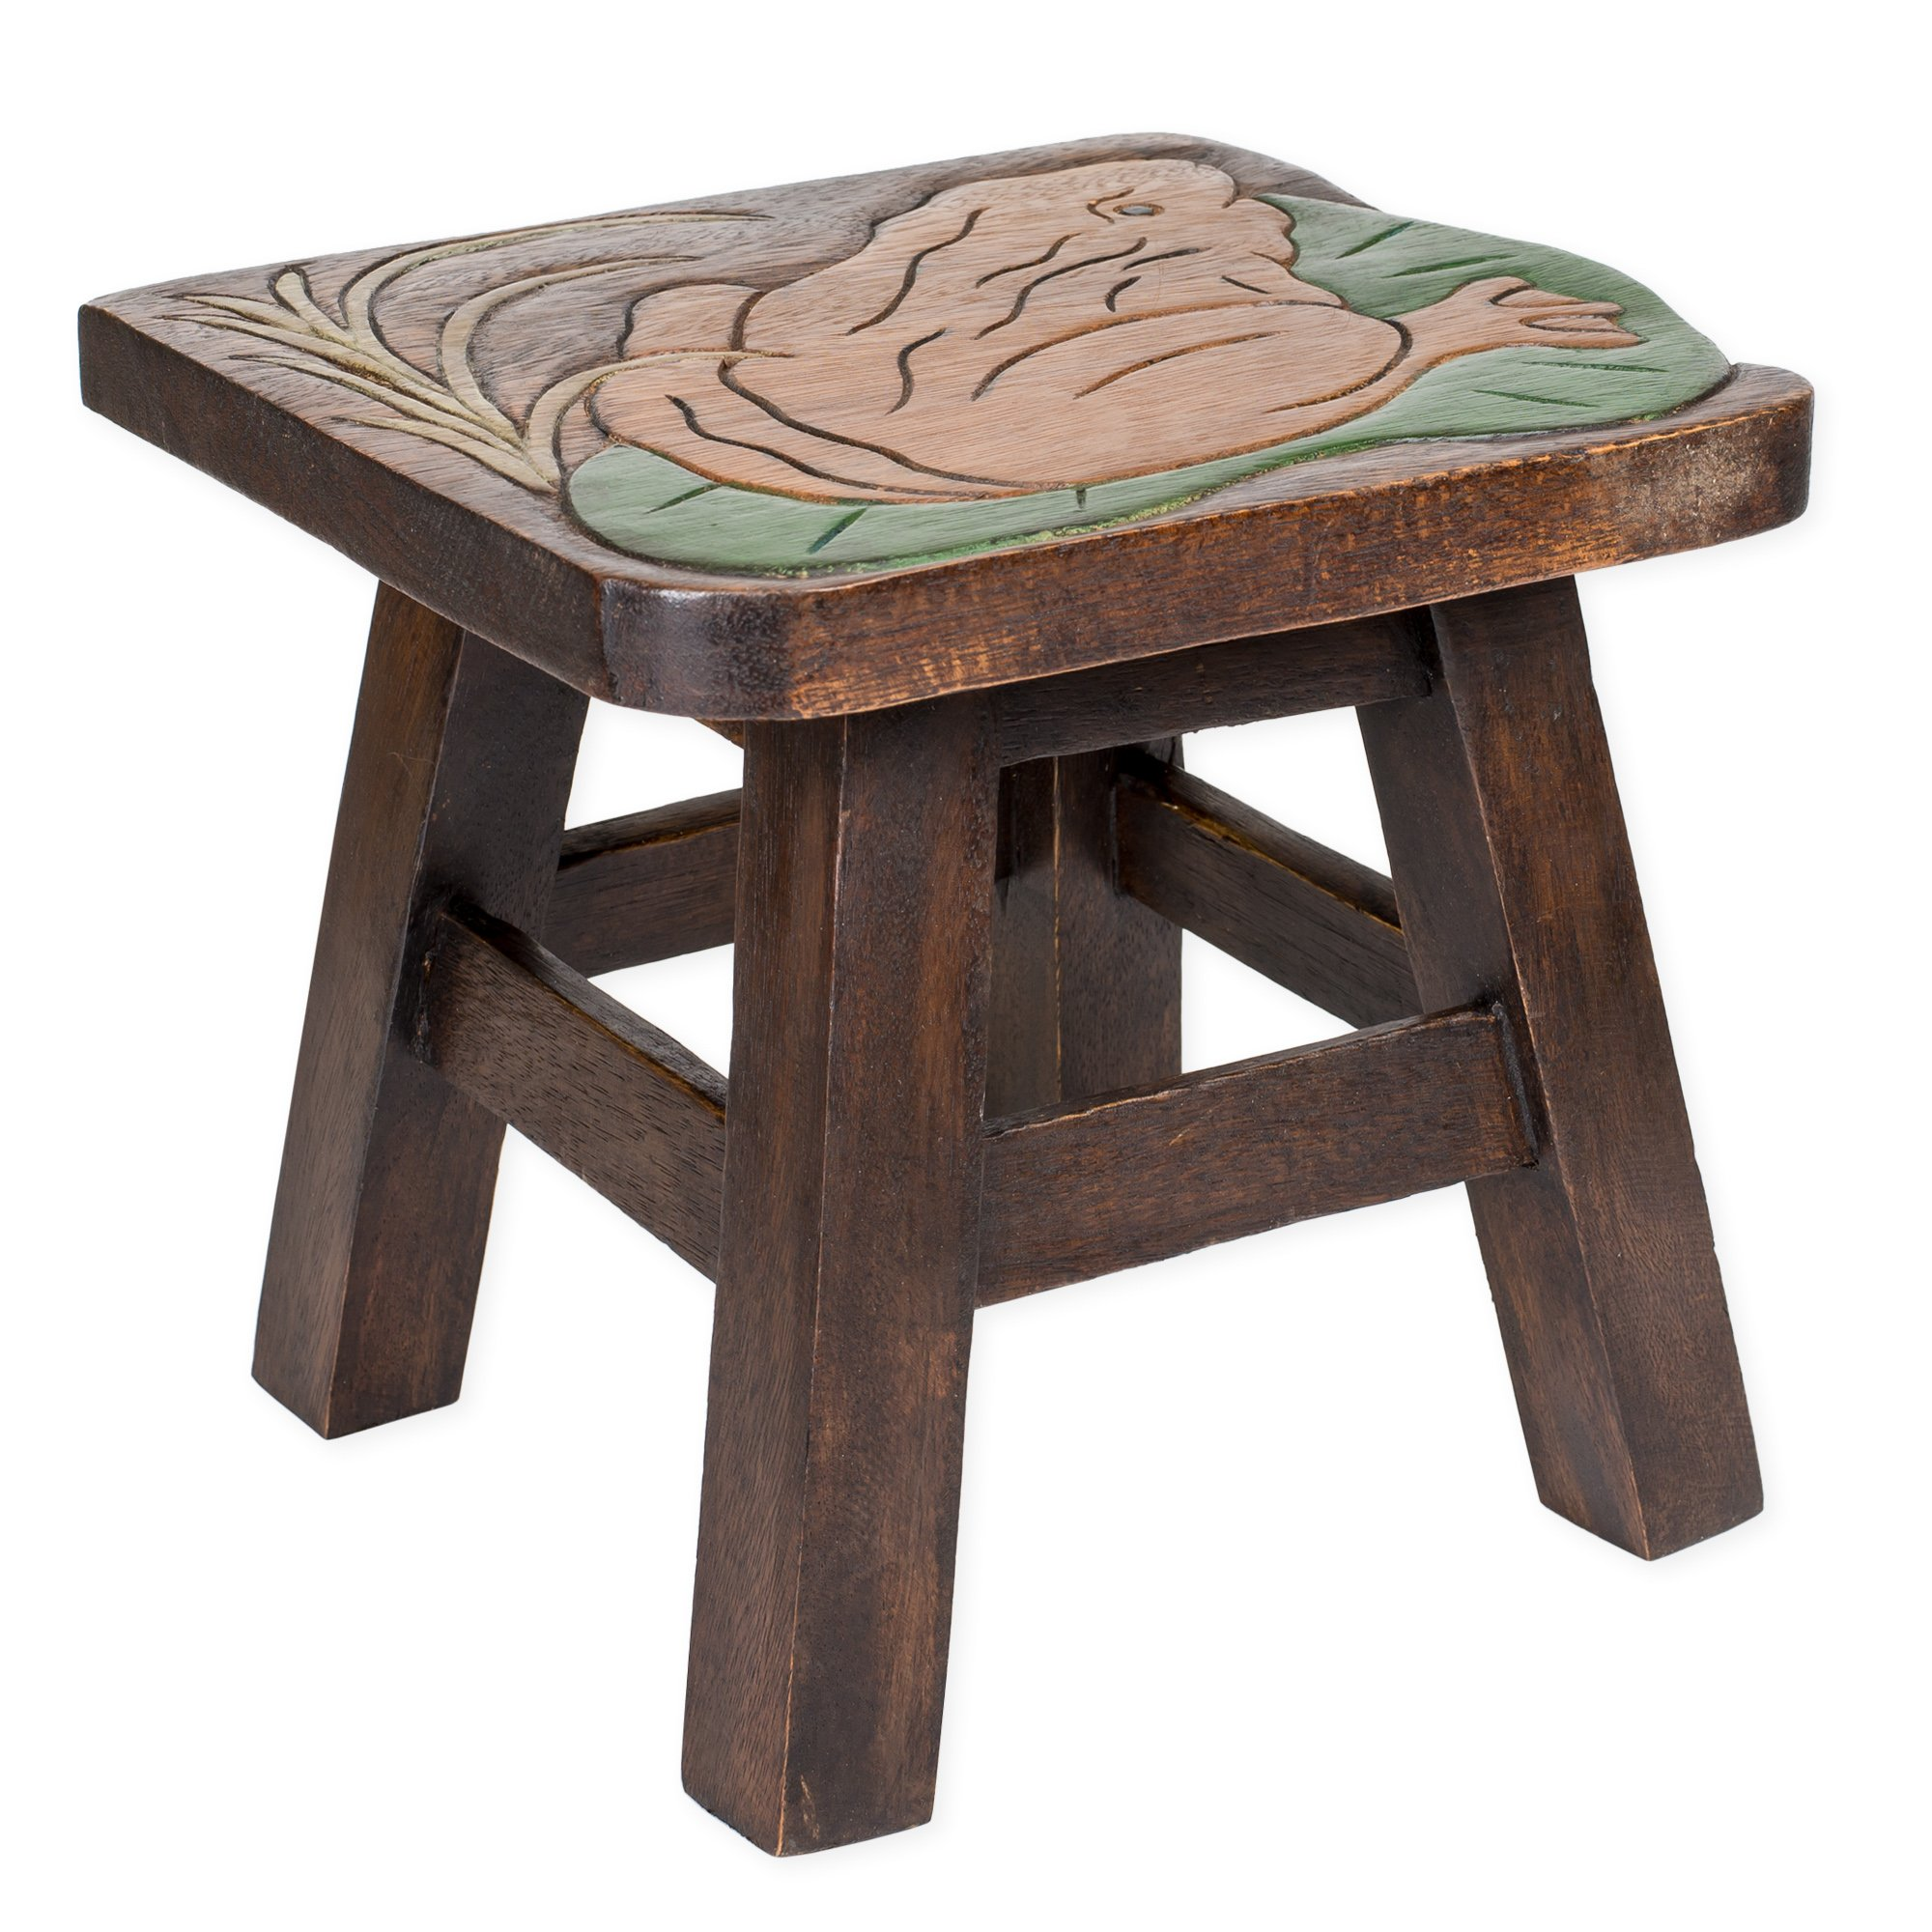 Frog Lillypad Design Hand Carved Acacia Hardwood Decorative Short Stool